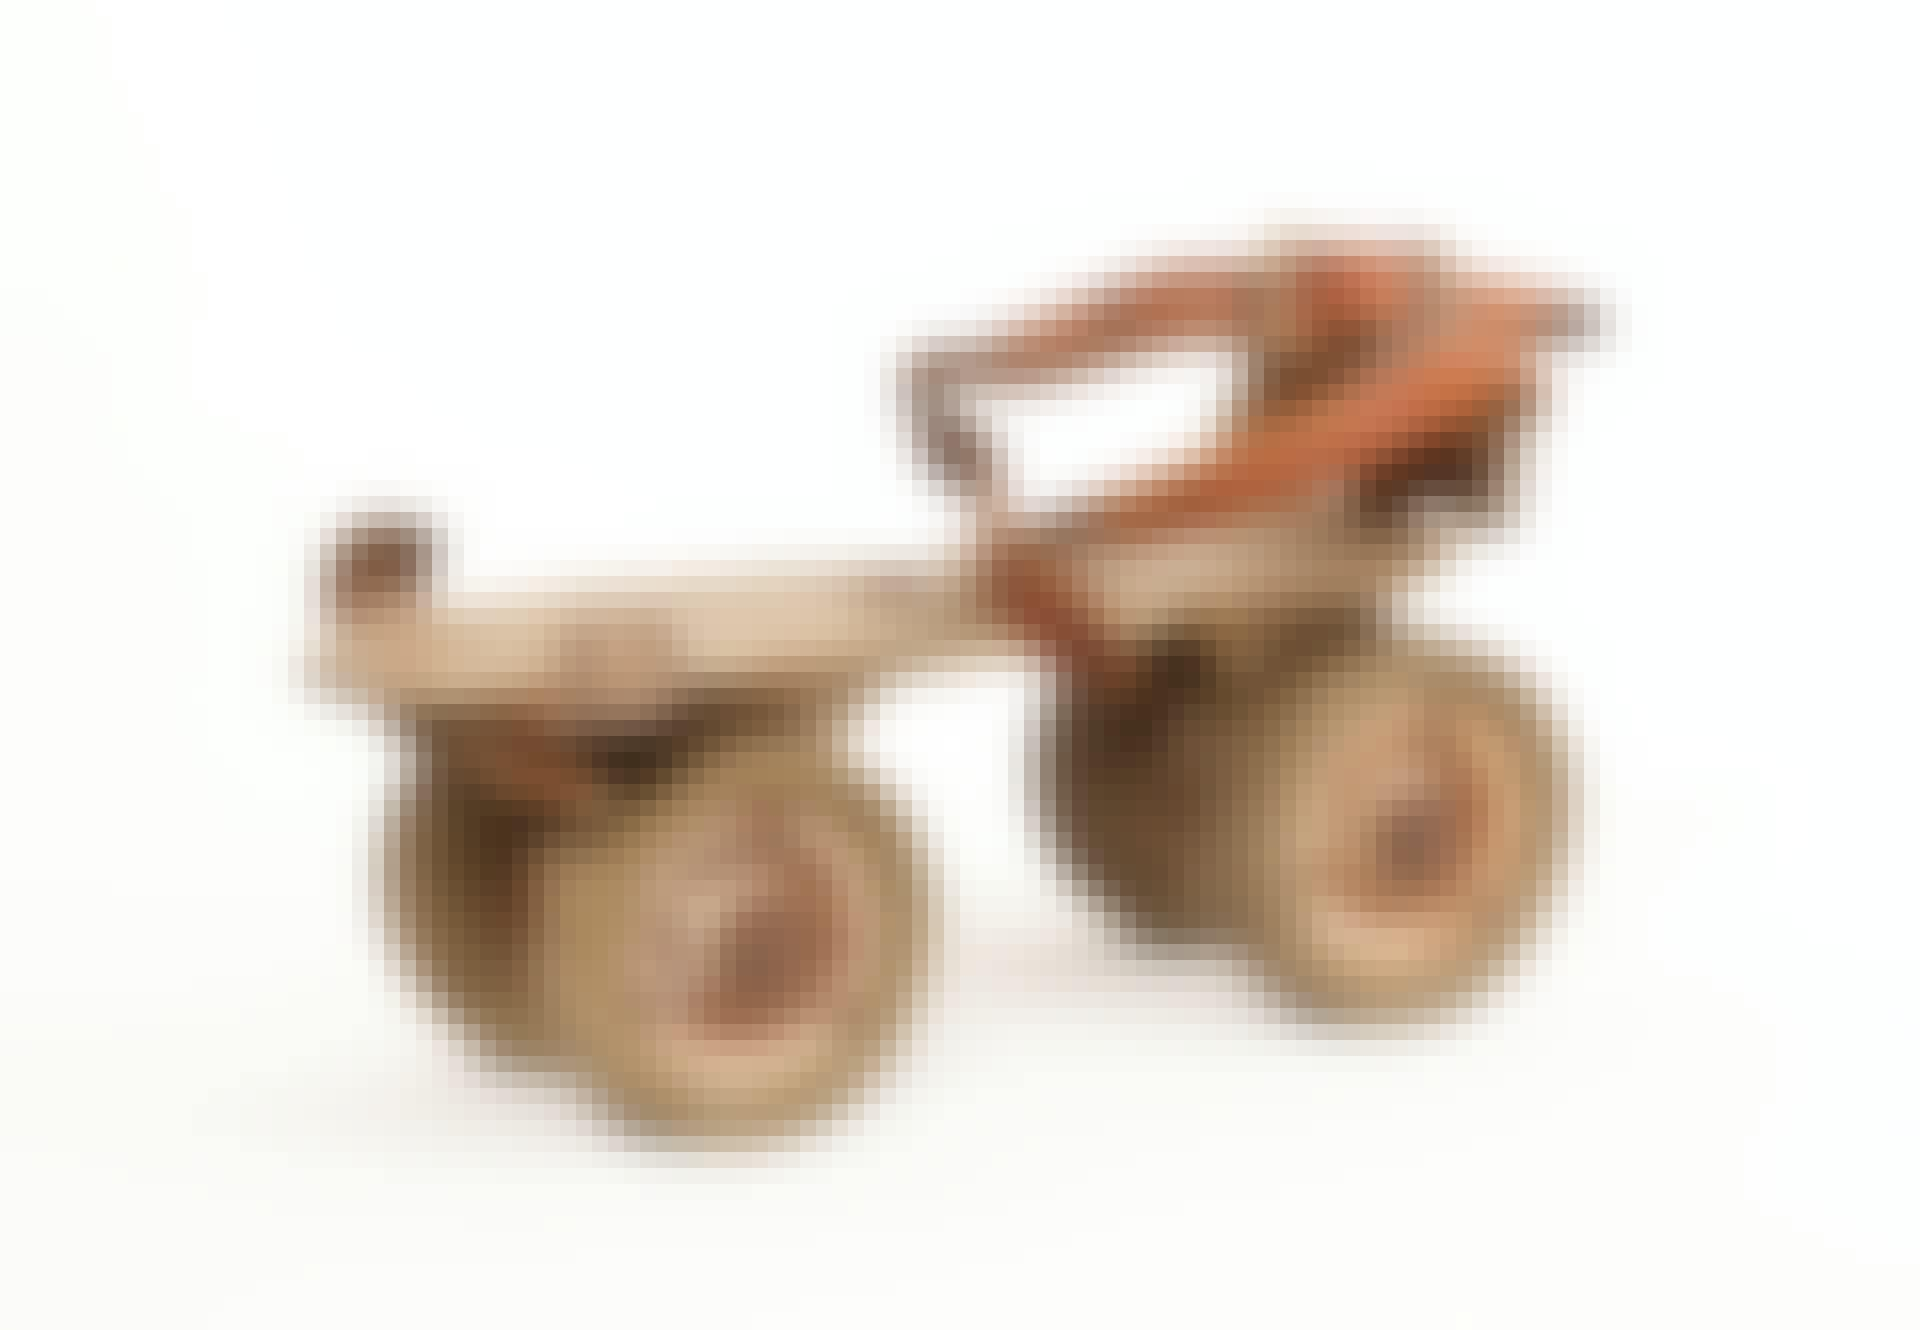 the first roller skates were patented in 1863